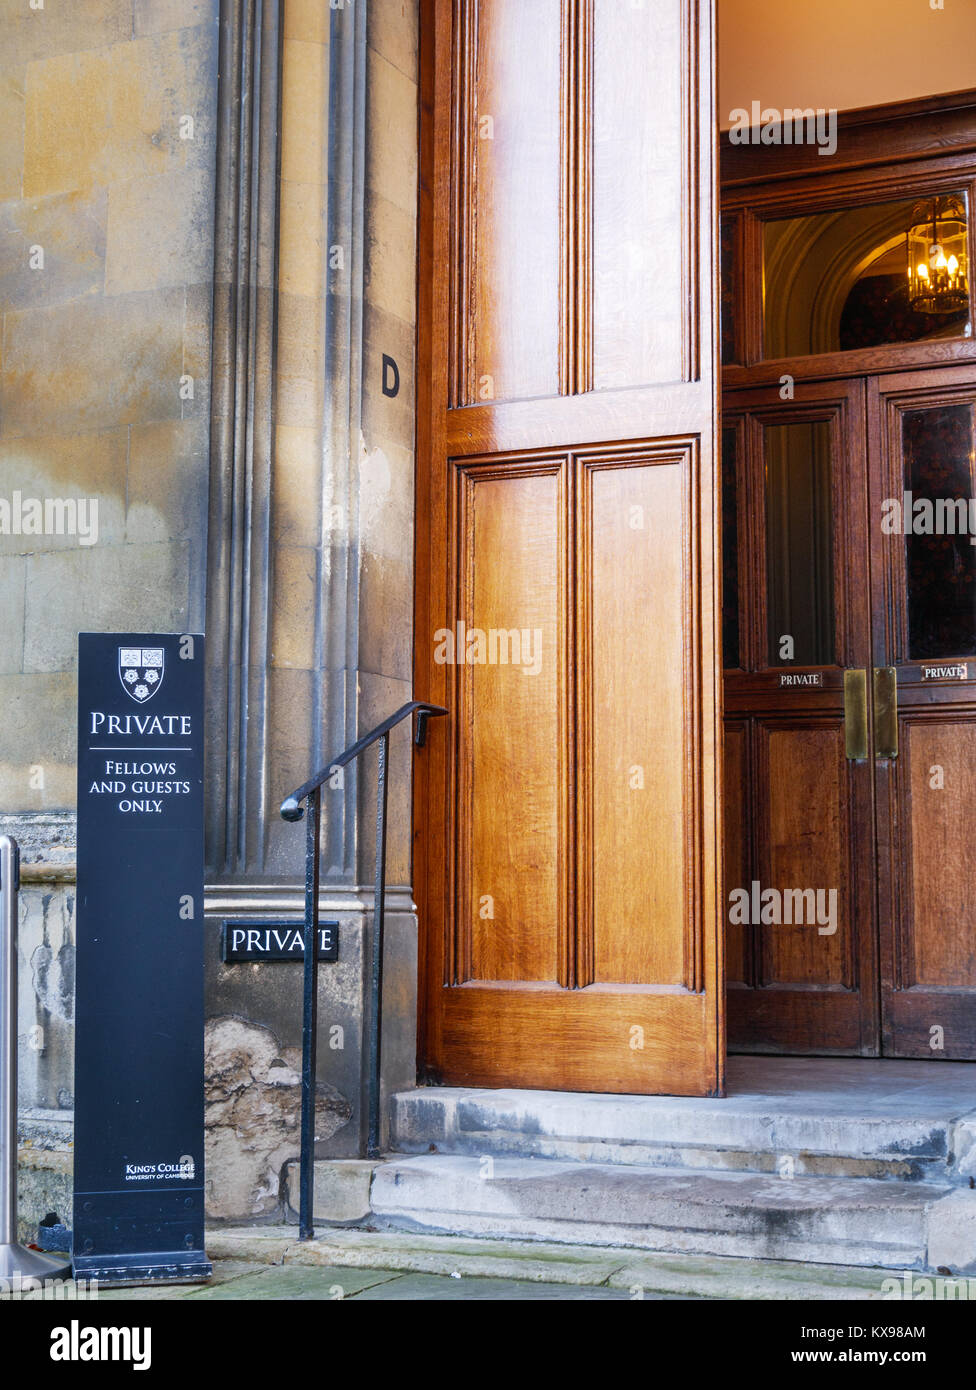 Nortice to visitors that this entrance at King's college, Cambridge university, England, is only for Fellows - Stock Image